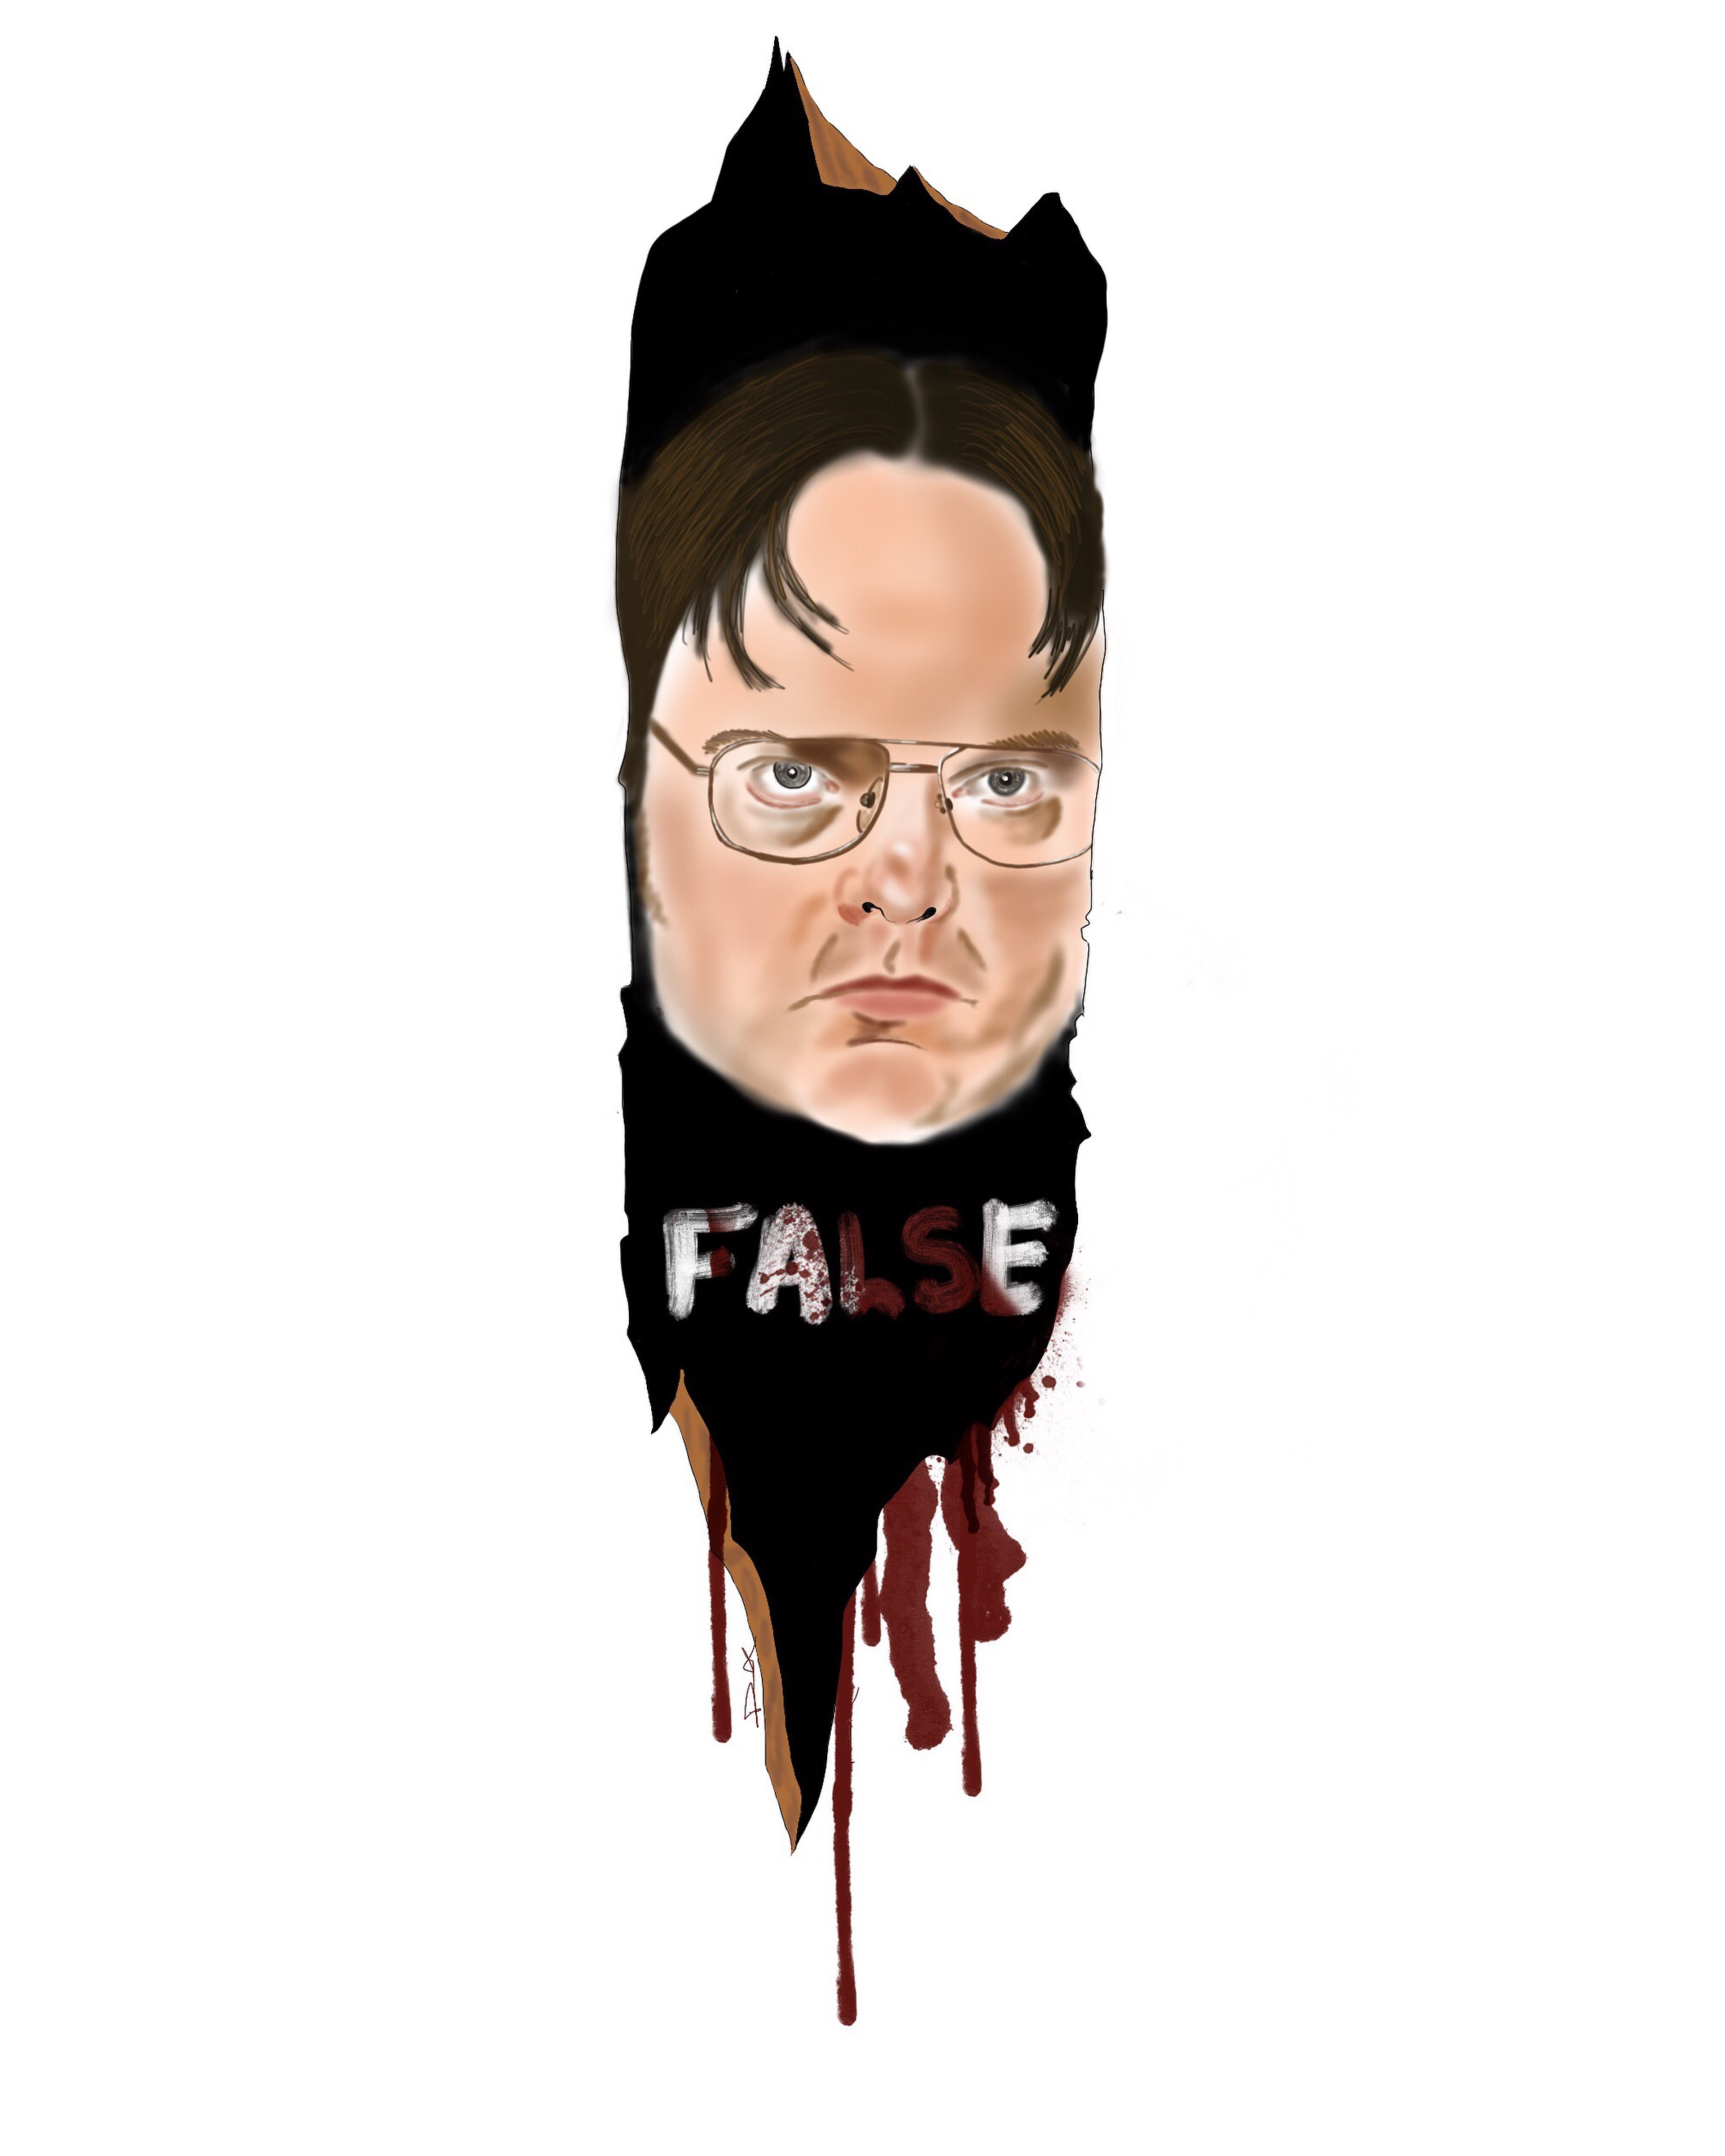 Here's Dwight